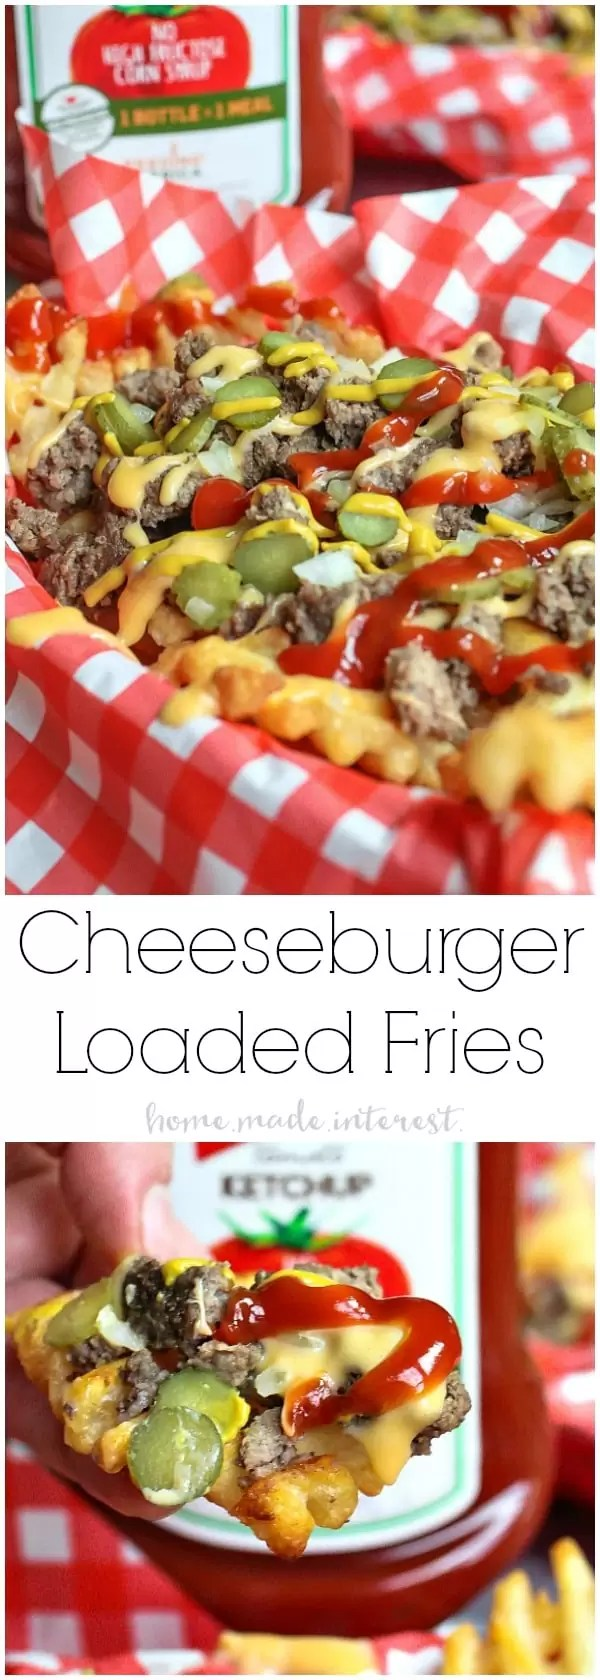 Loaded Cheeseburger Fries | These french fries are loaded with everything it takes to make a great cheeseburger. Ground beef, onions, pickles, cheese, and of course ketchup and mustard. Loaded Cheeseburger Fries are an awesome appetizer recipe for your next football party or a weeknight meal for the family. This loaded french fry recipe is going to blow your mind!